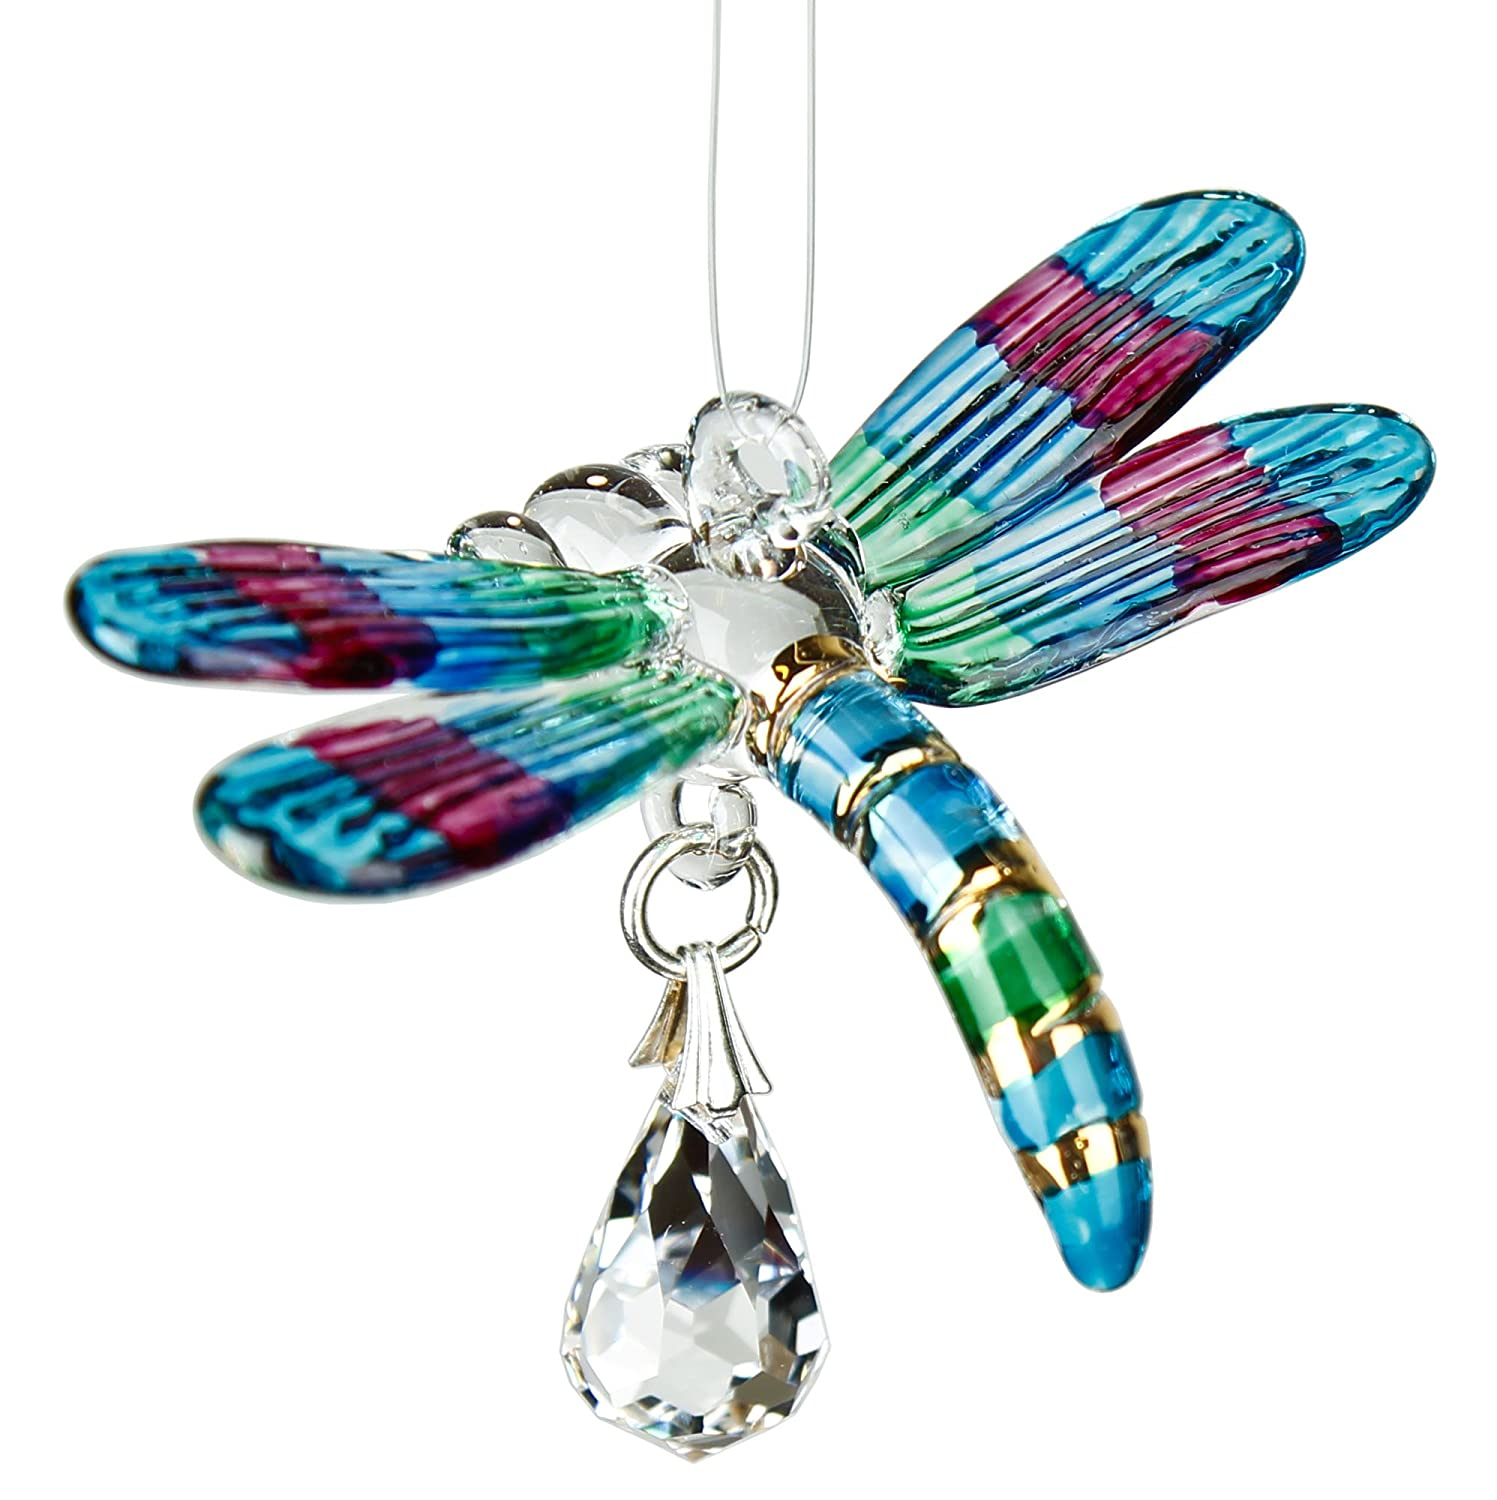 Woodstock Chimes Rainbow Maker Fantasy Glass Dragonfly Suncatcher, Spring Pastels CDPAS